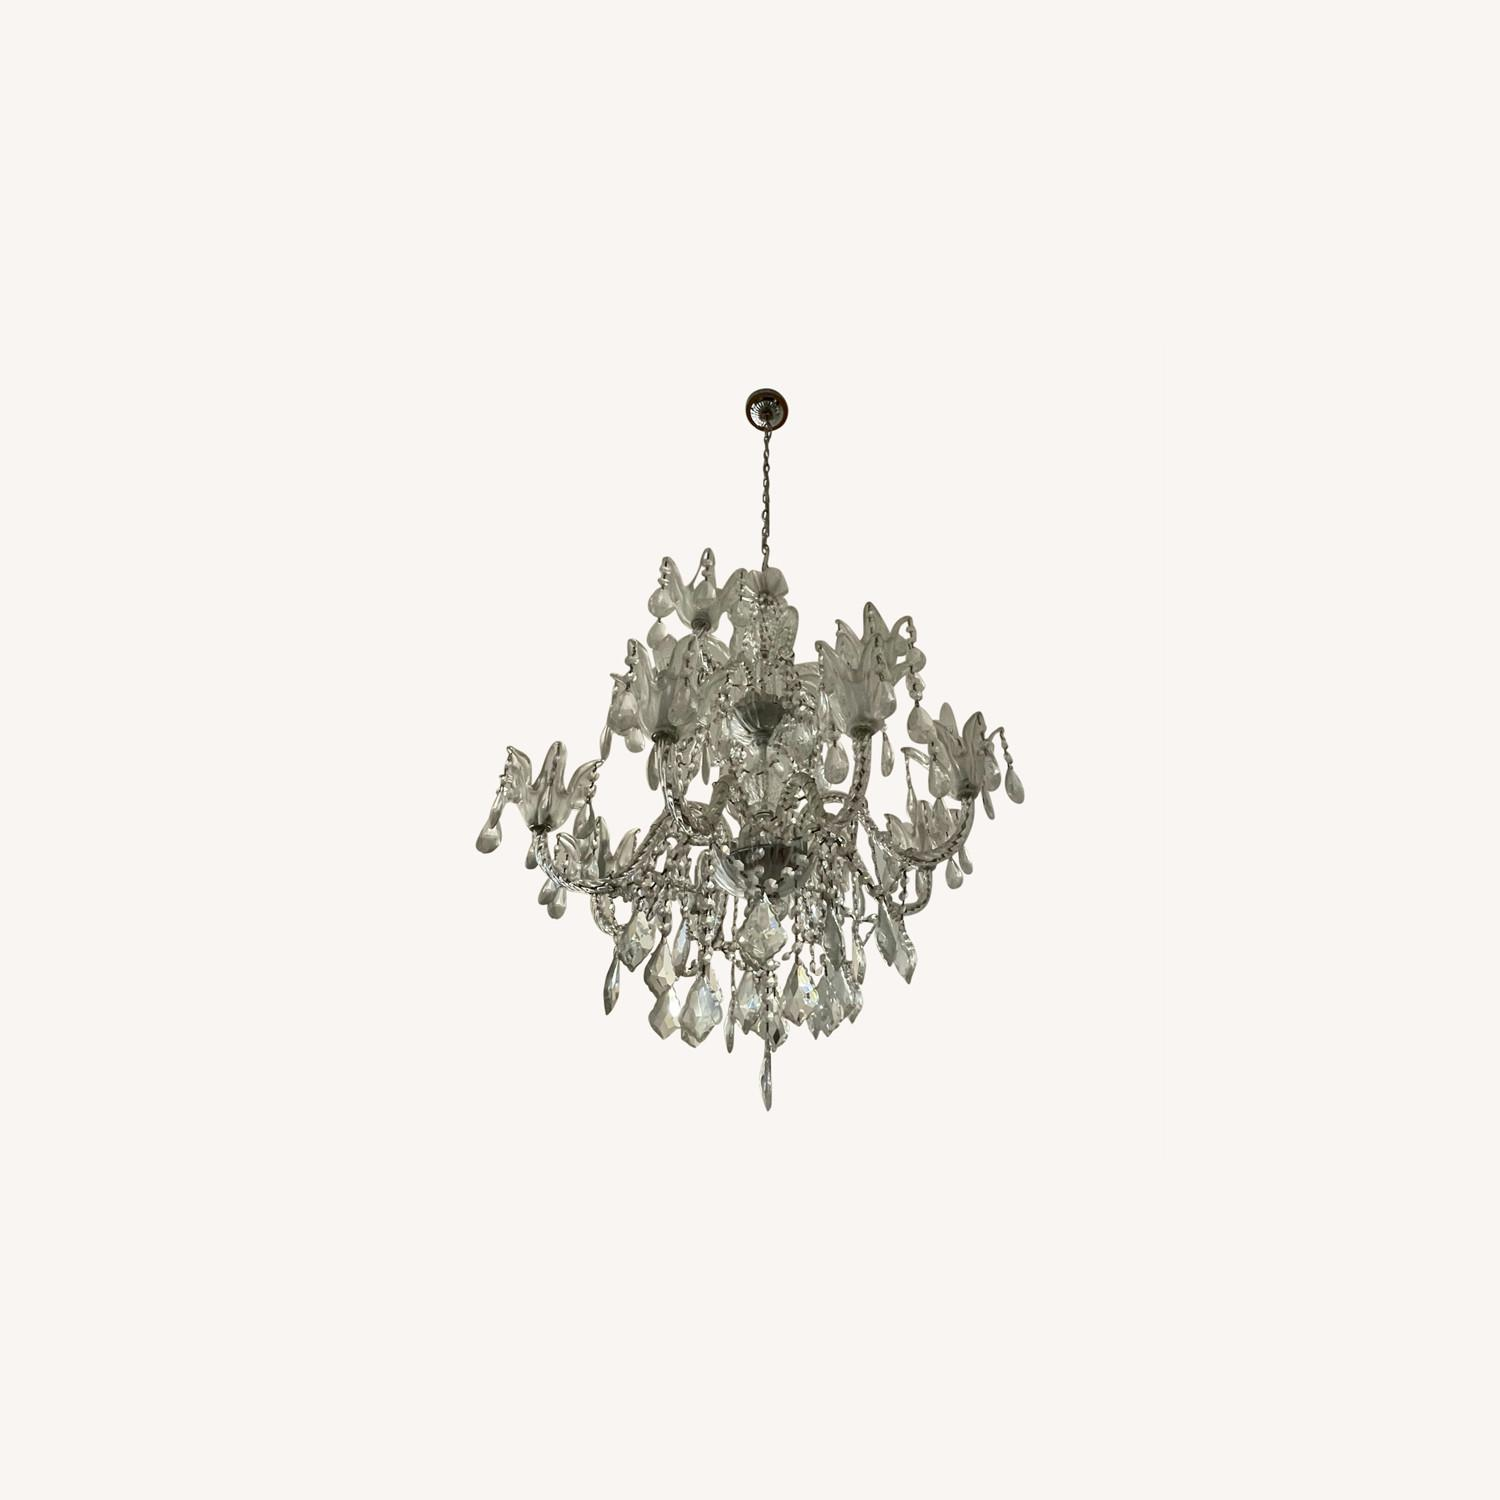 X-Large 12 Bulb Crystal 2-Tier Chandelier - image-0